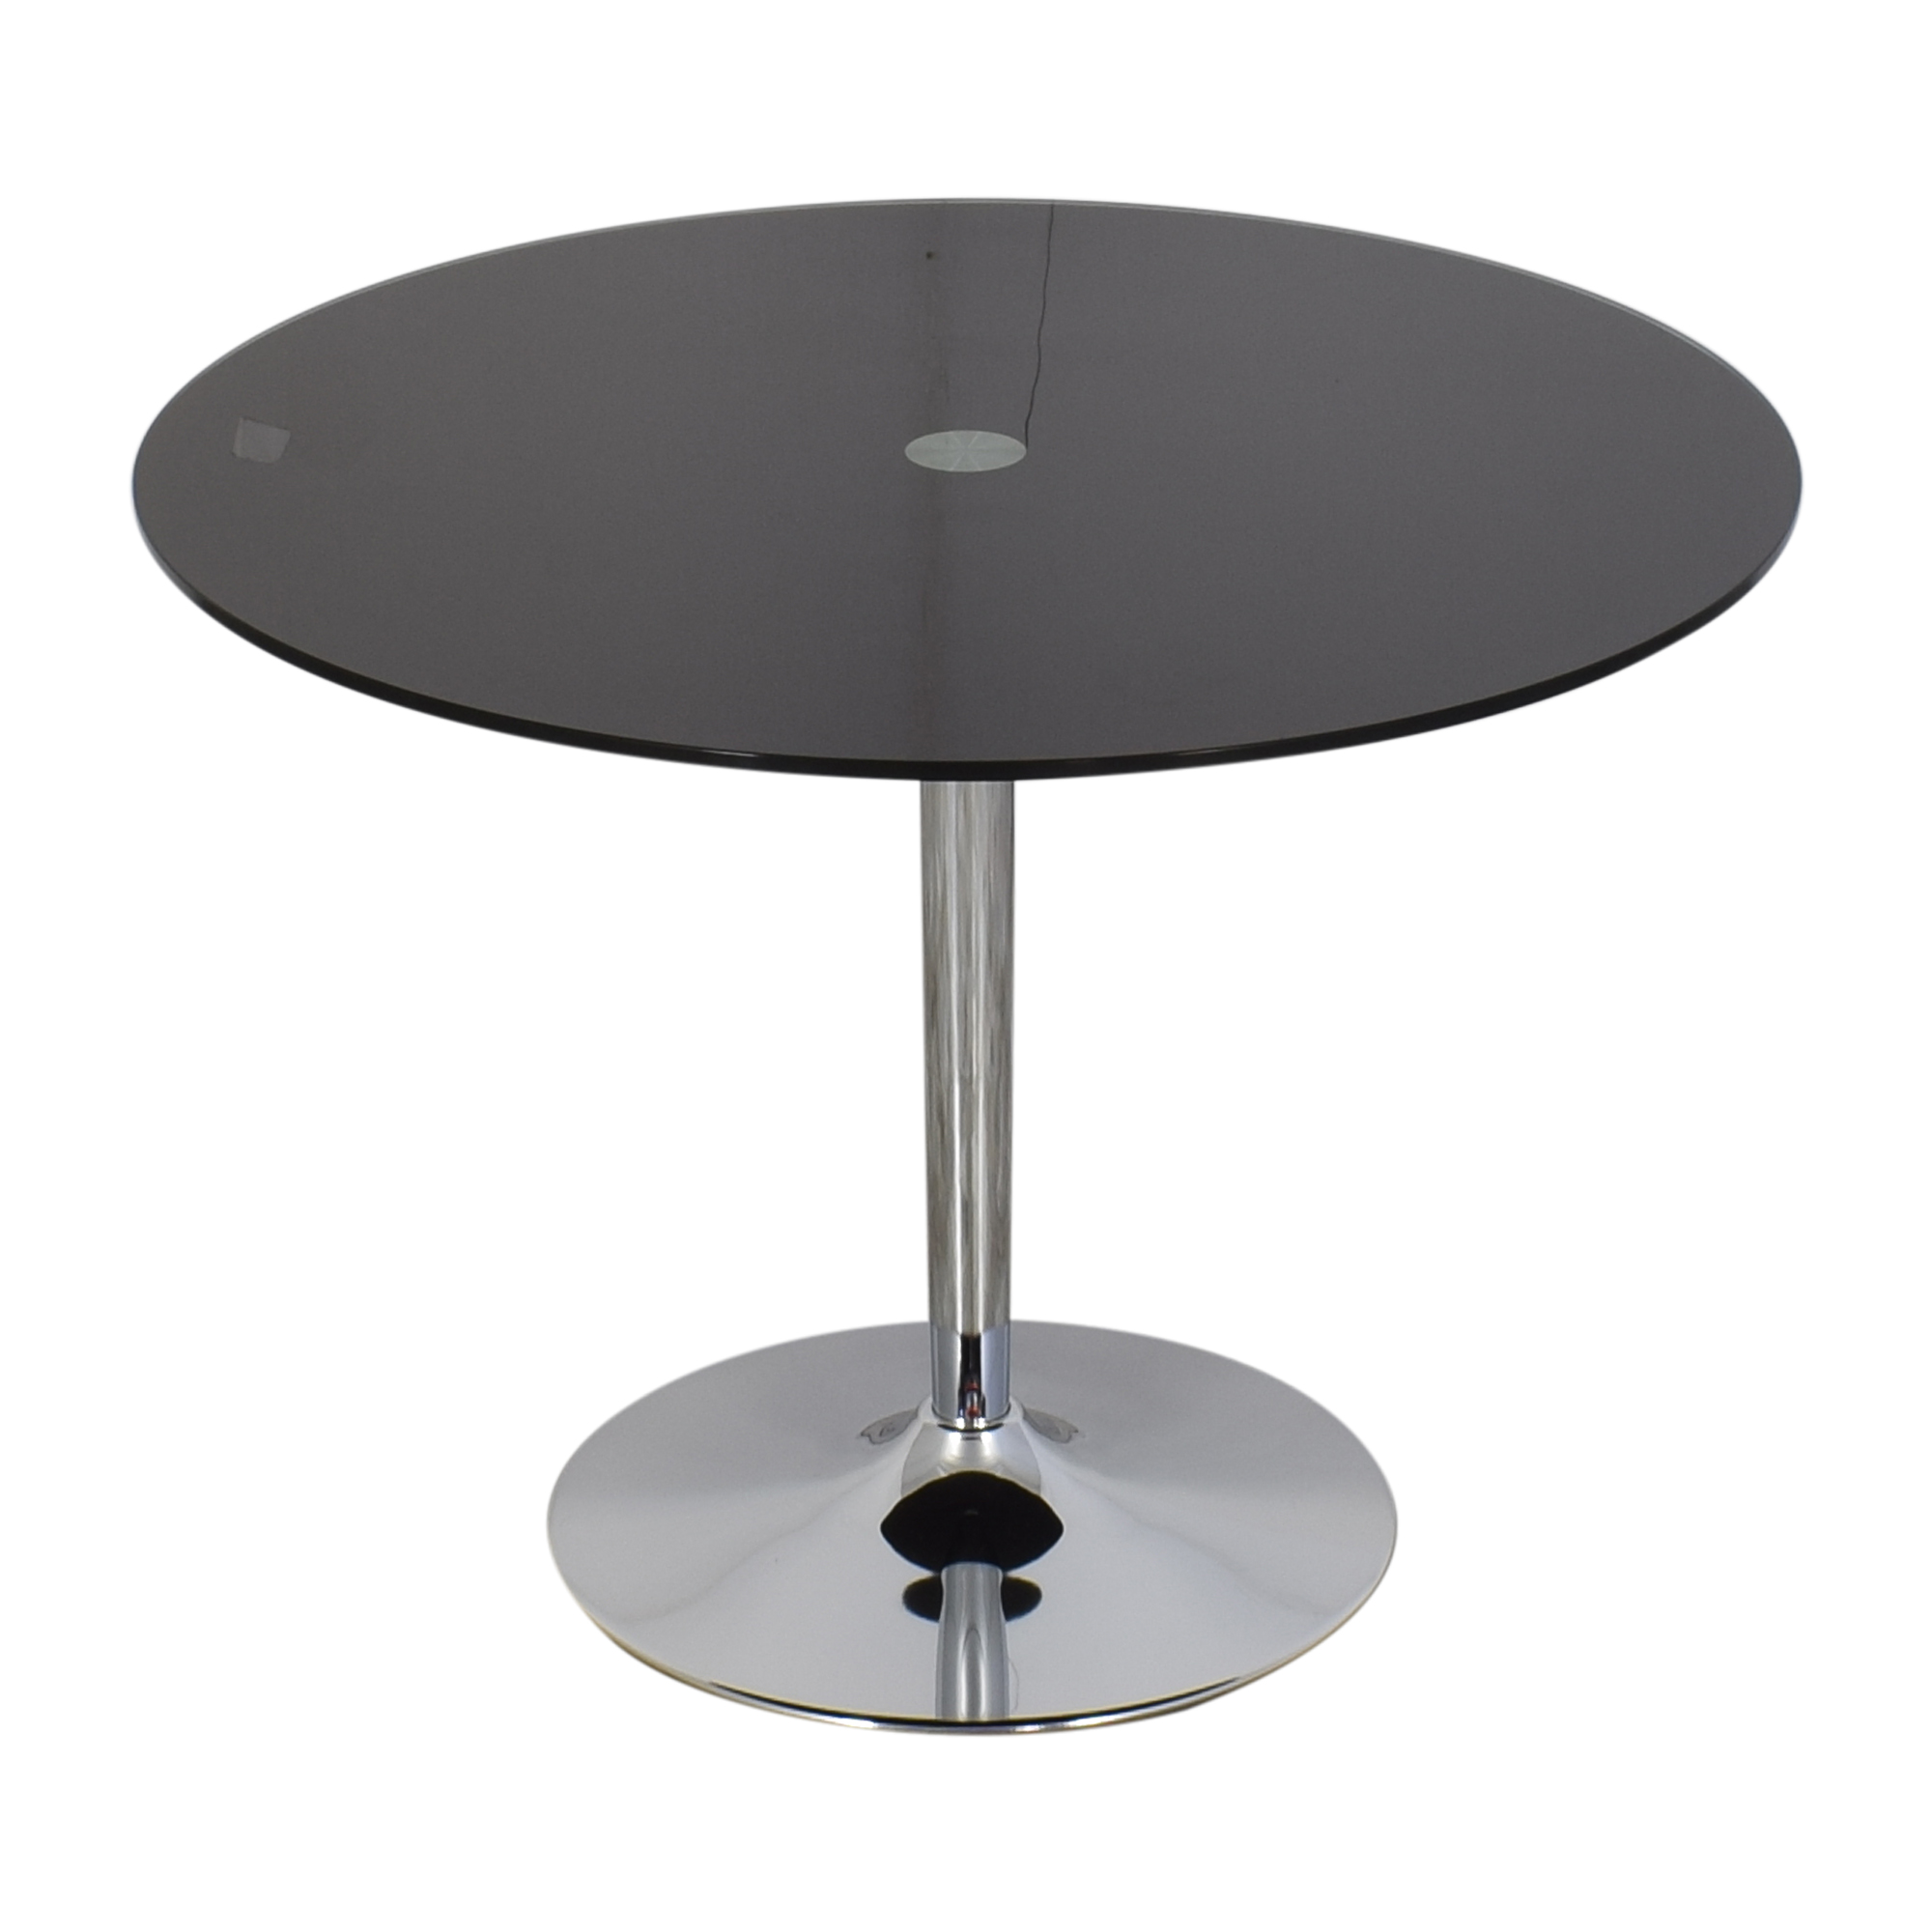 Jensen-Lewis Jensen Lewis Black Glass and Chrome Pedestal Dining Table black and silver